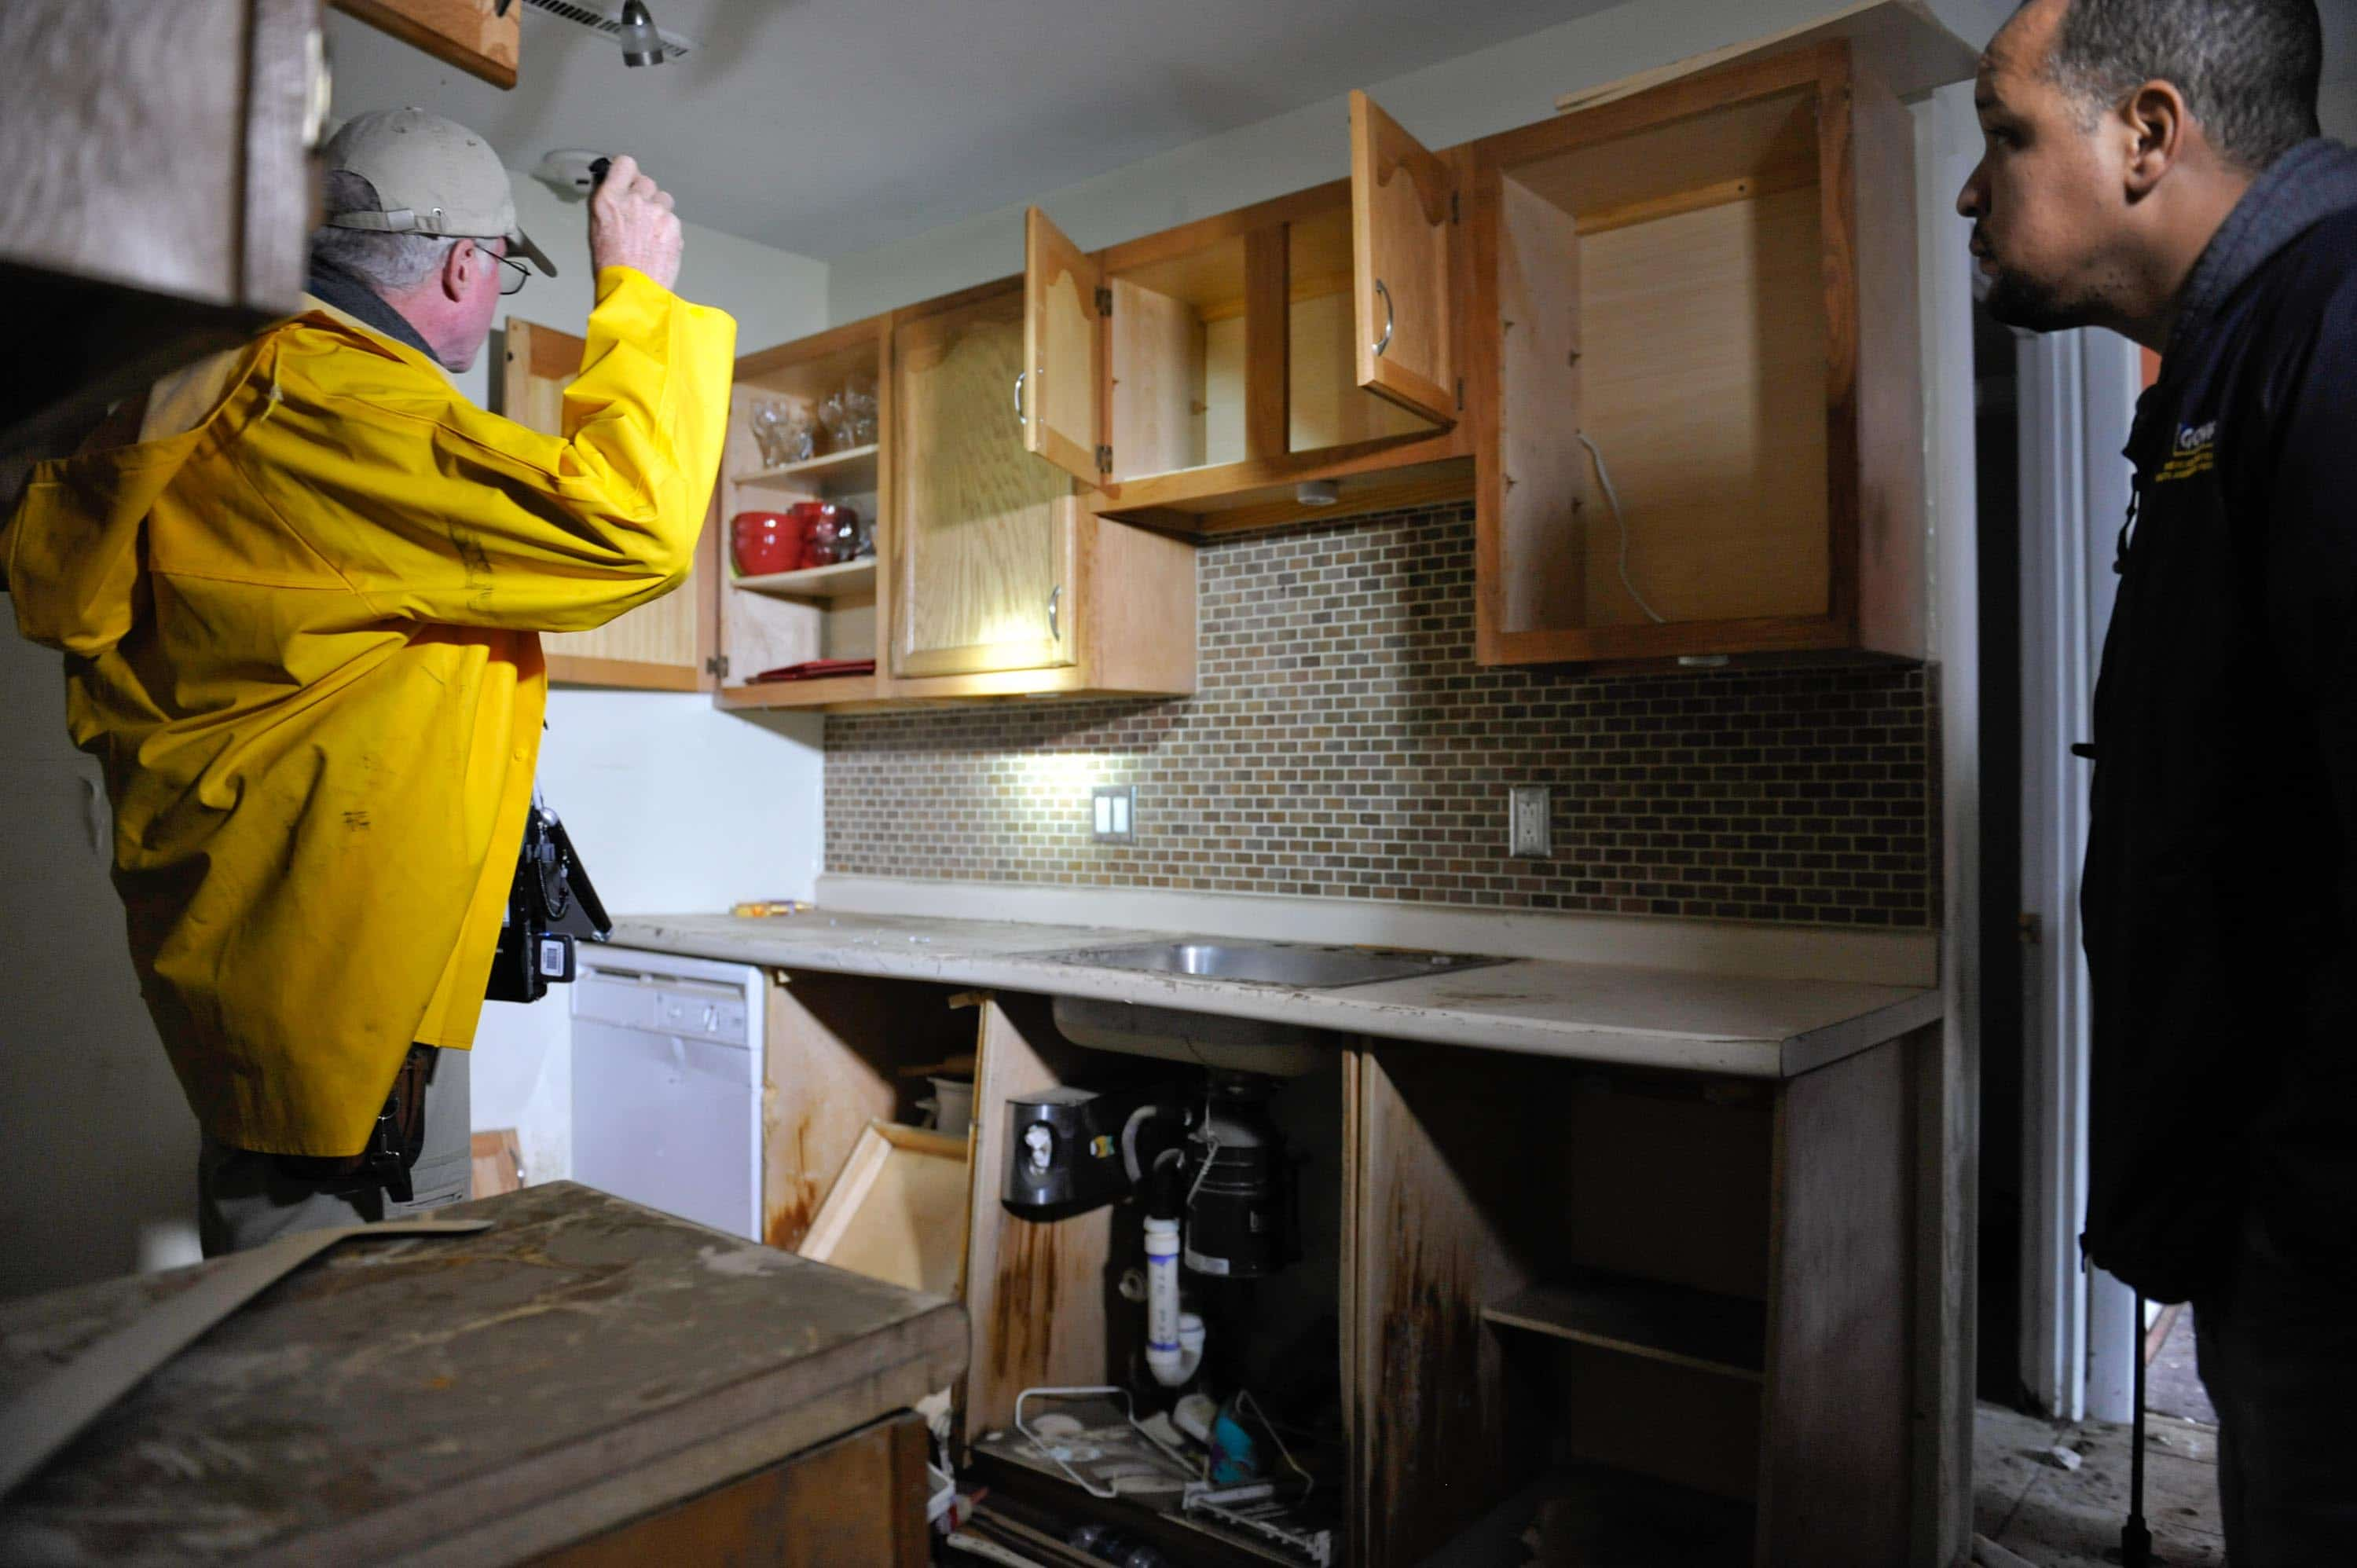 Fort Myers public adjuster inspecting kitchen